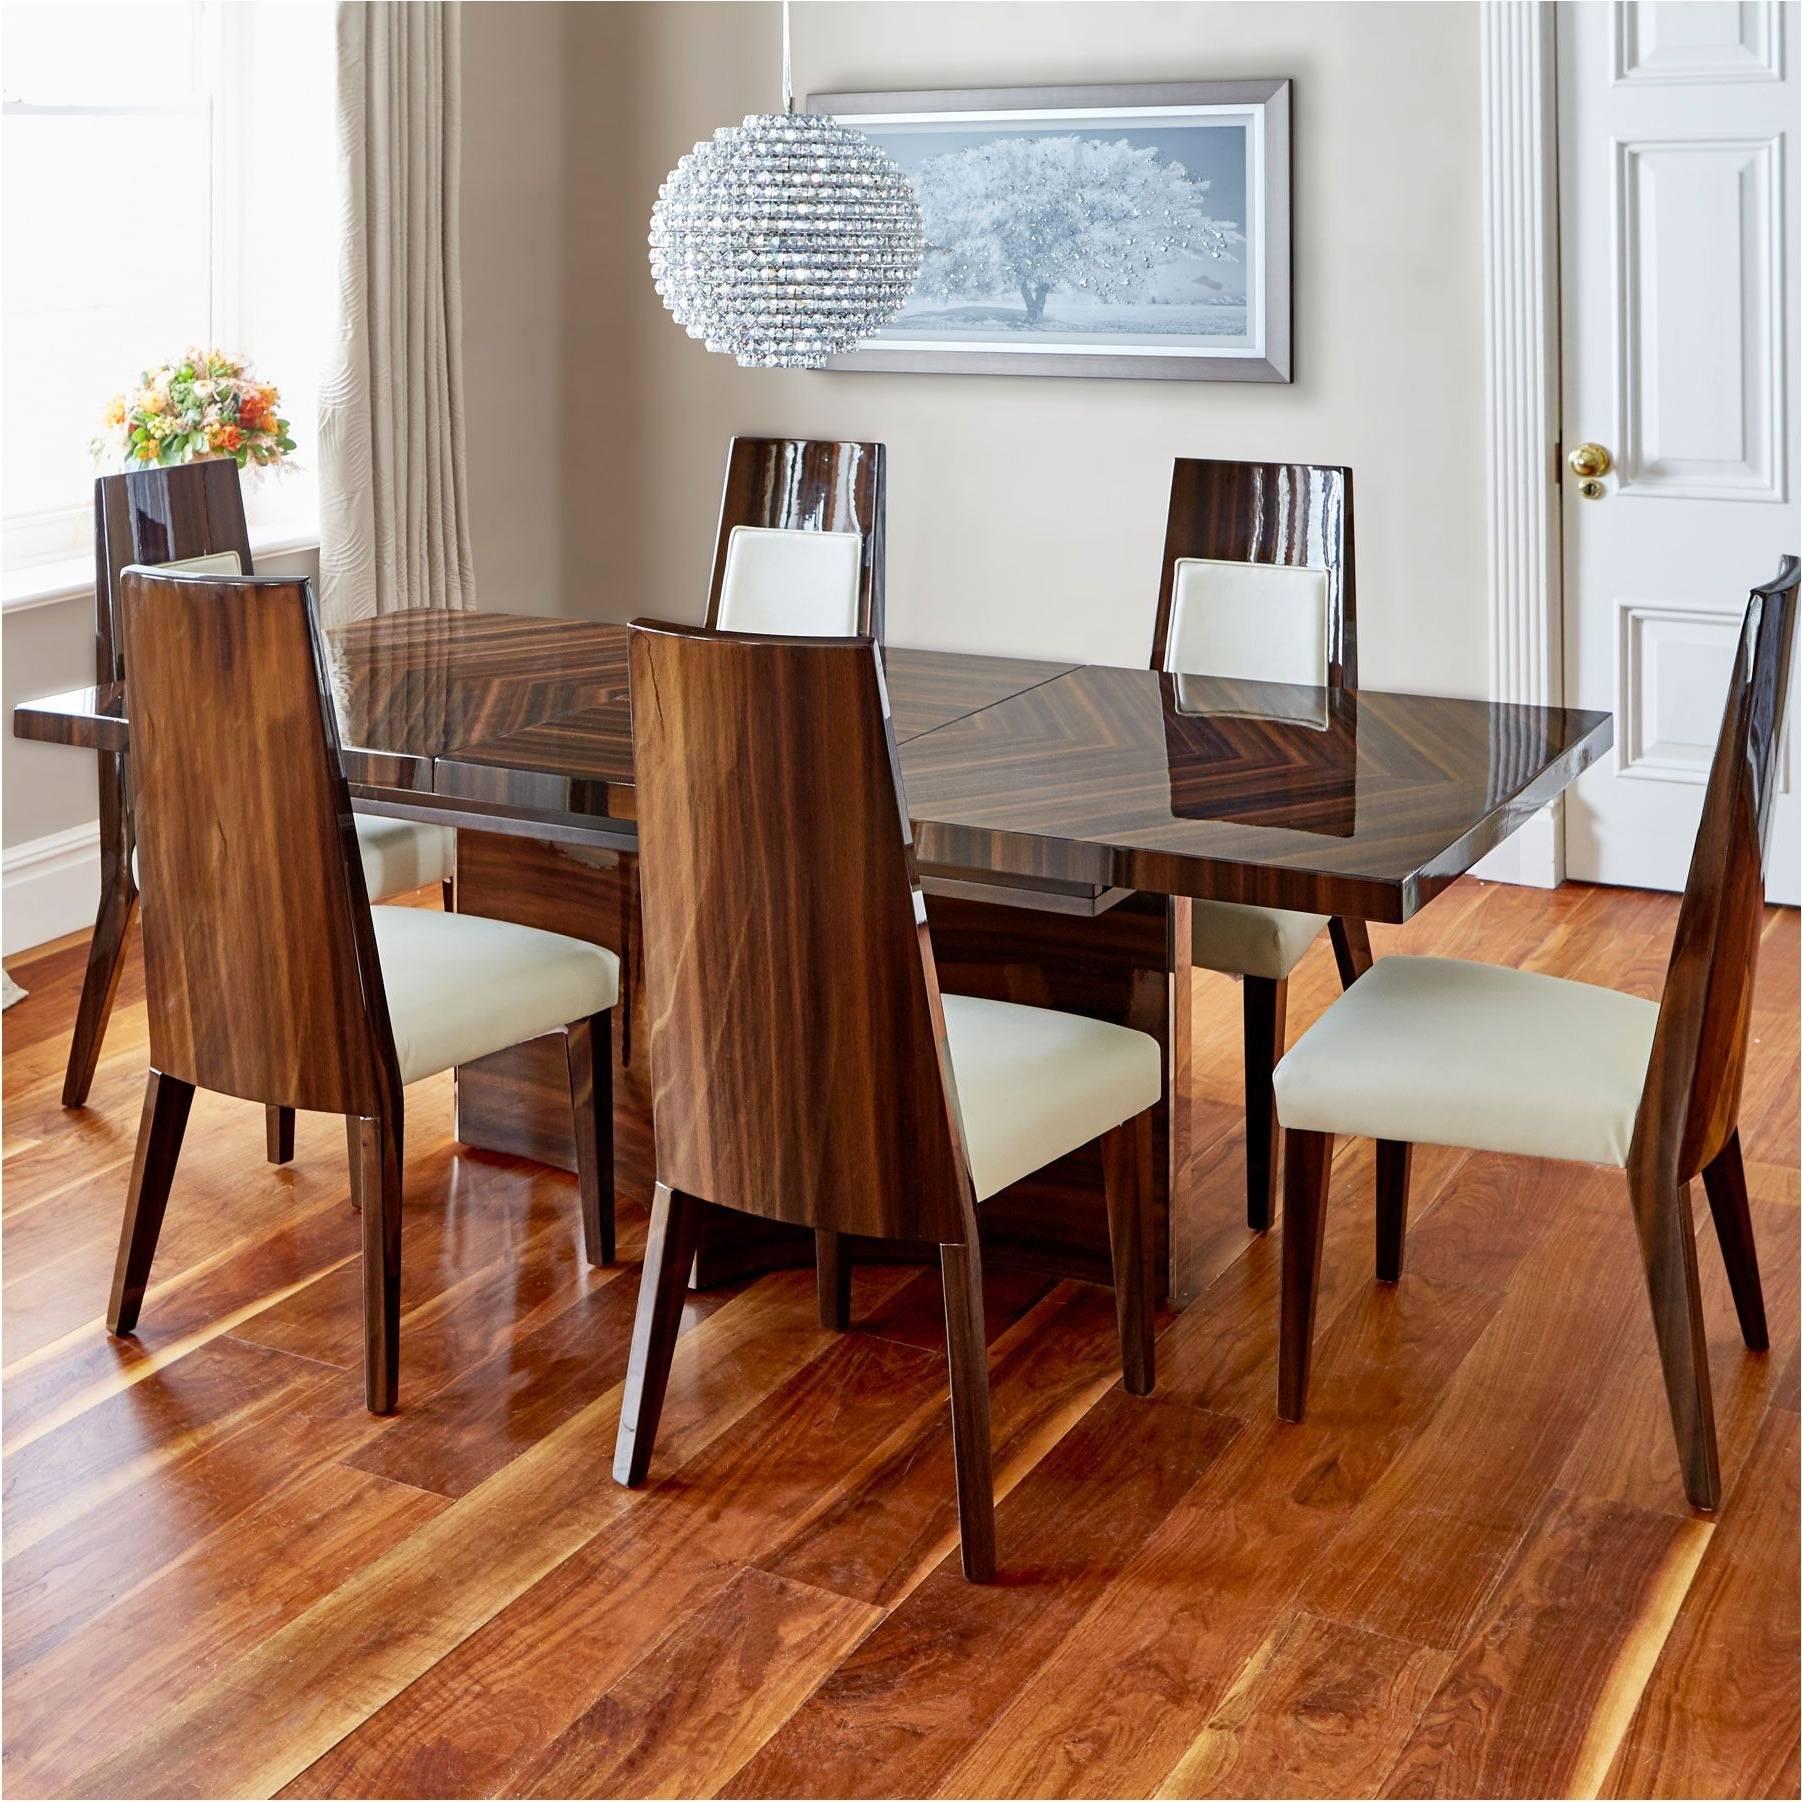 Walnut Dining Table And 6 Chairs Inside Most Popular Best Alexis High Gloss Walnut Dining Table And 6 Chairs – Walnut (View 20 of 25)